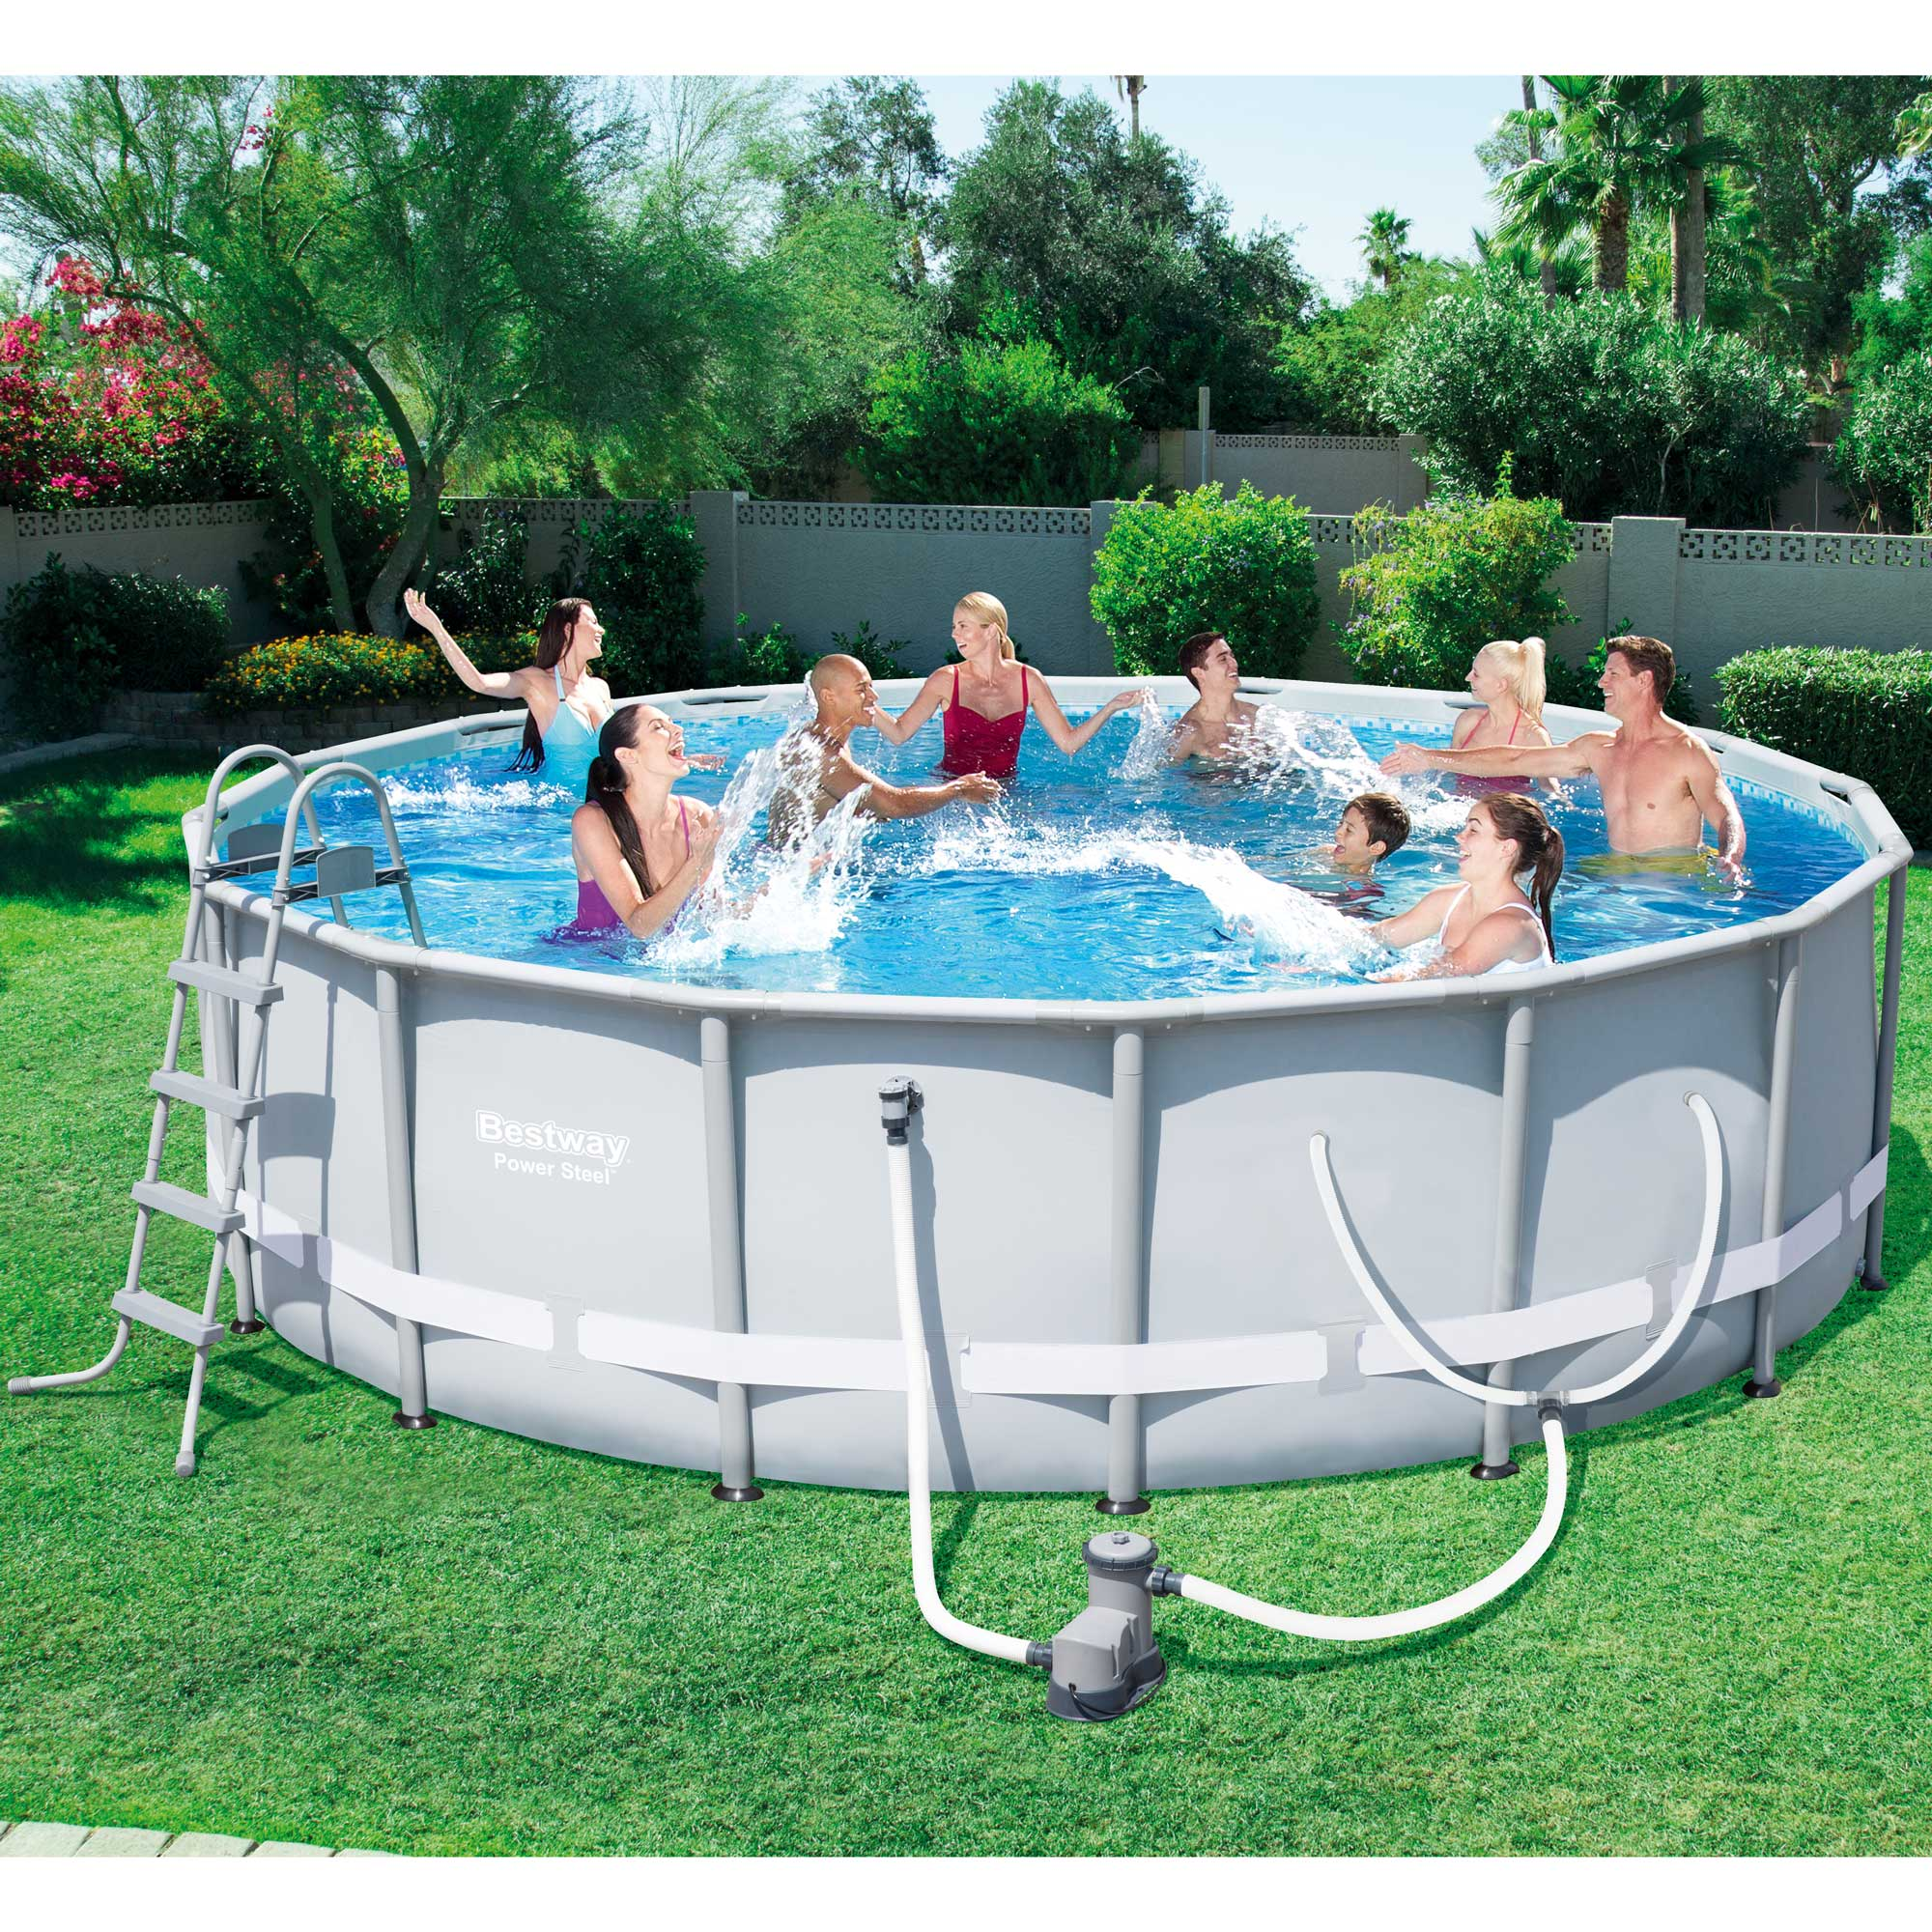 Bestway 16 39 x 48 power steel frame above ground pool set for Bestway swimming pools